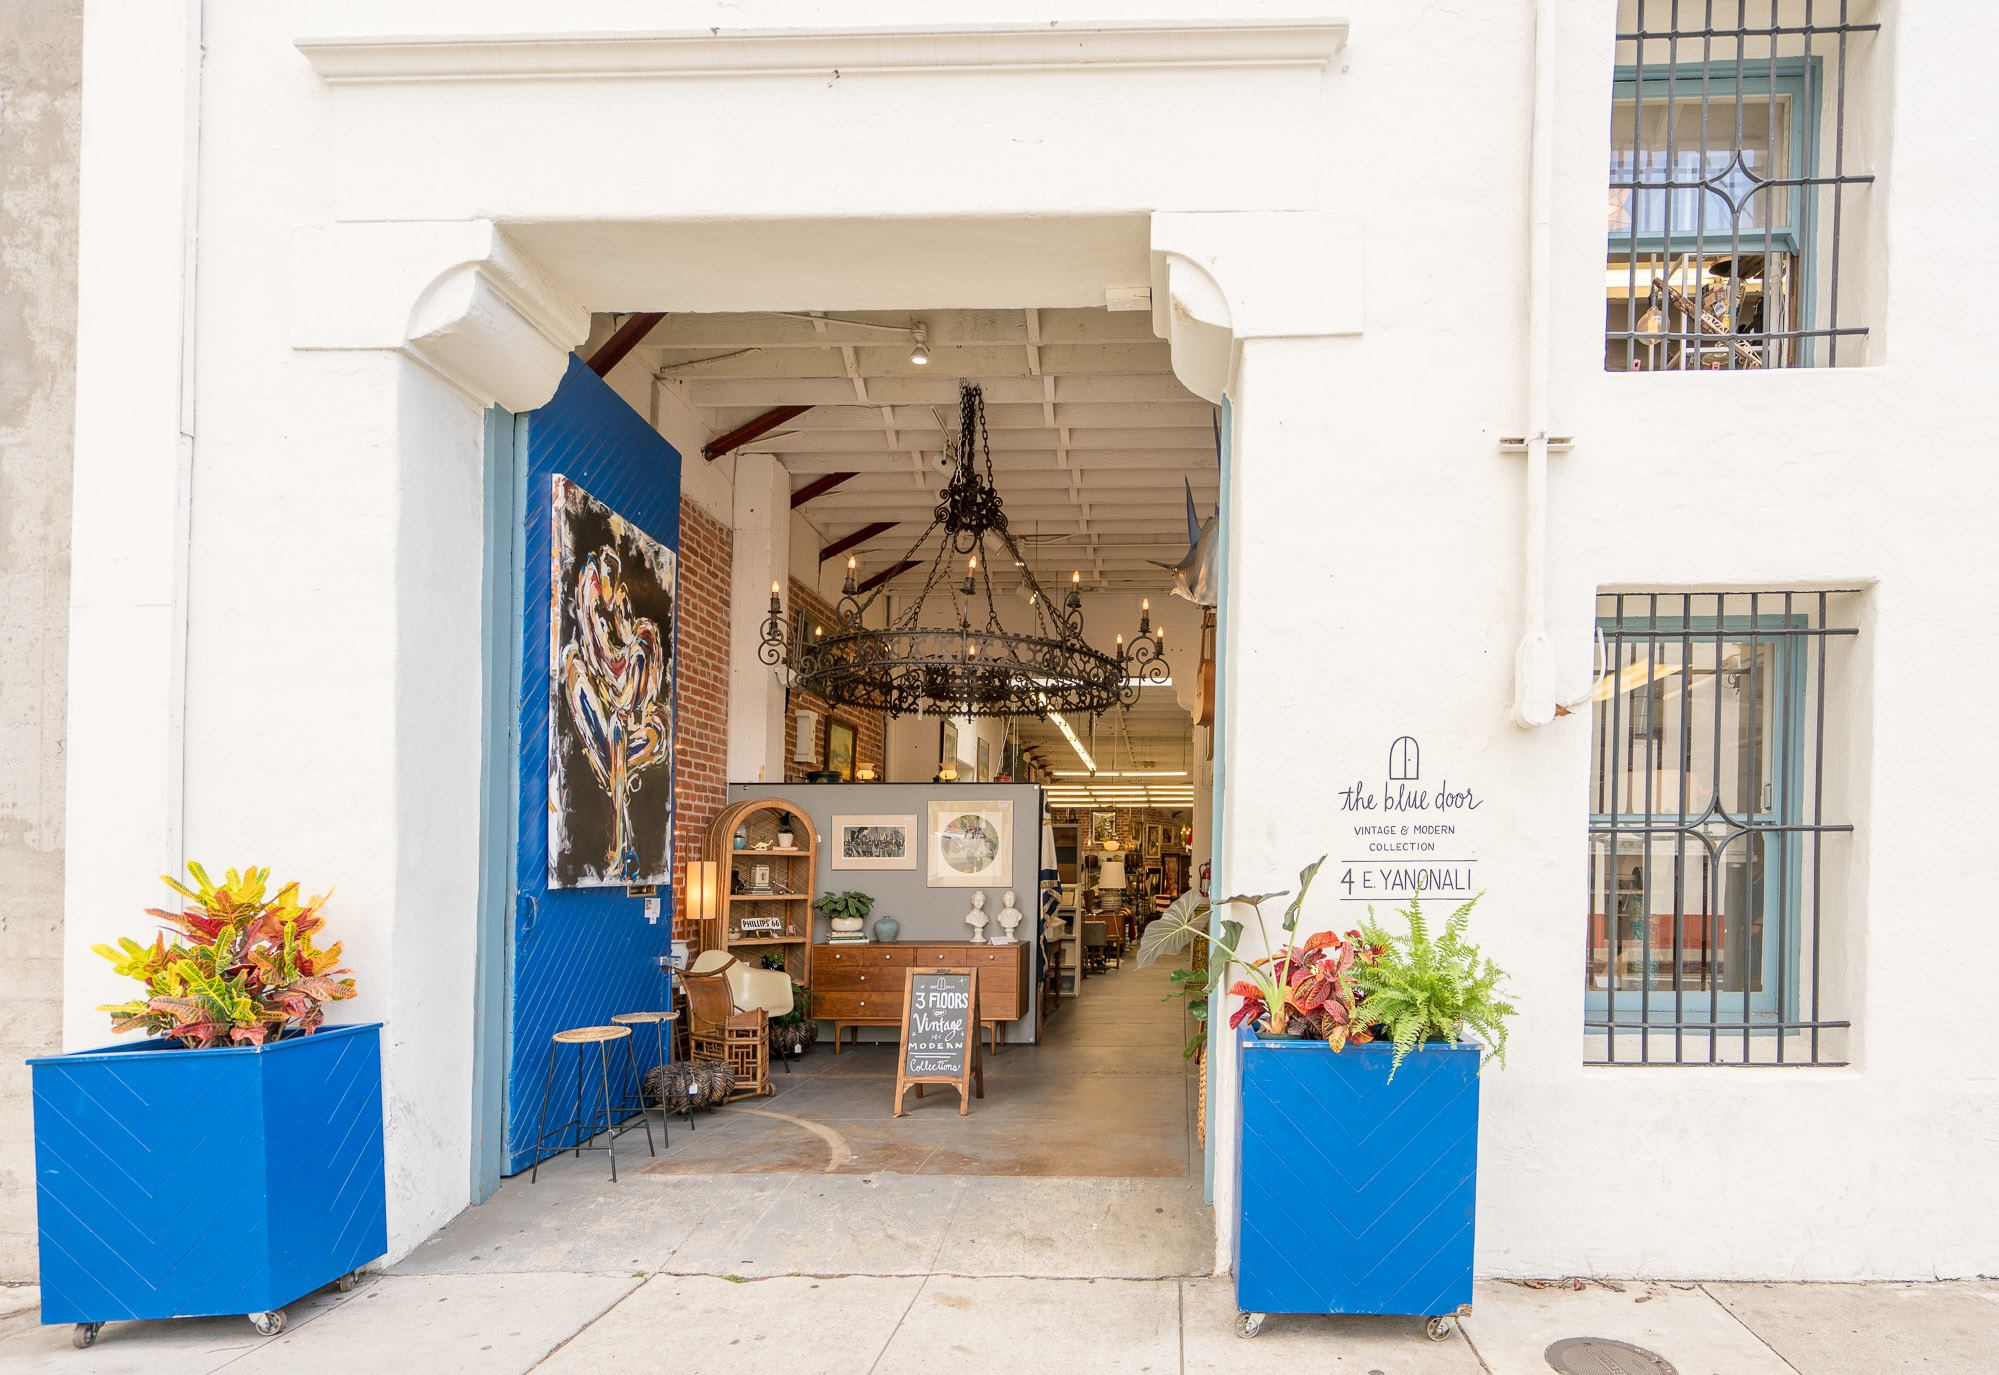 The Blue Door is one of the best shops in Santa Barbara's Funk Zone for its Mid Century Modern decor.